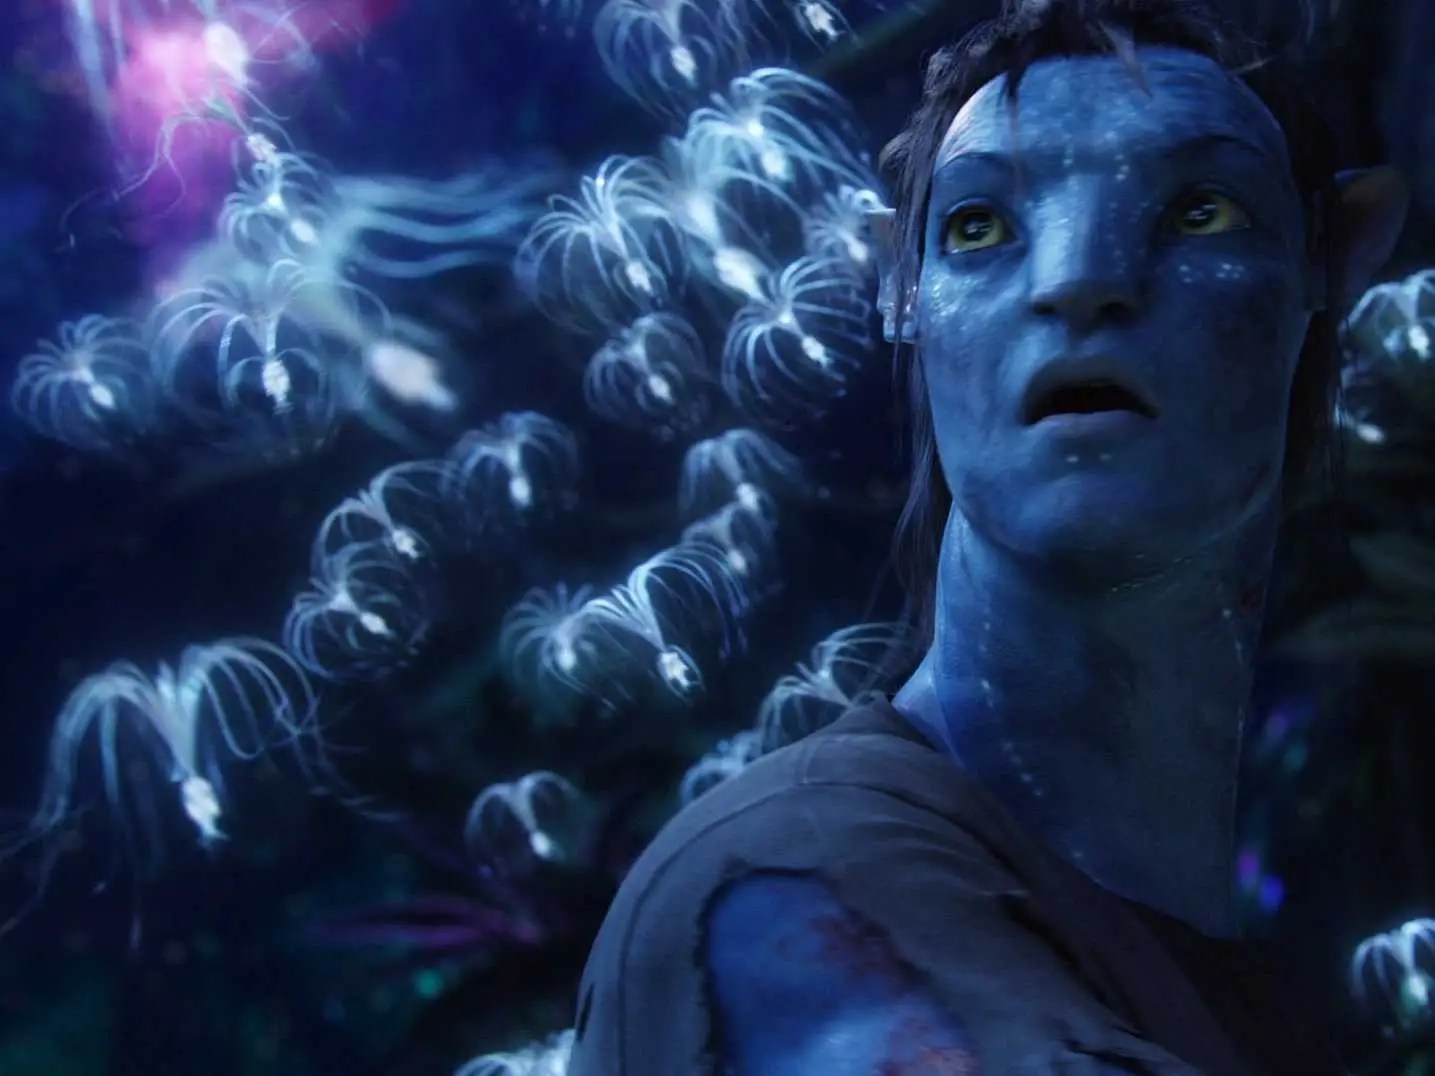 Godfather Hd Wallpaper James Cameron Discusses Avatar Sequels Will Film In New